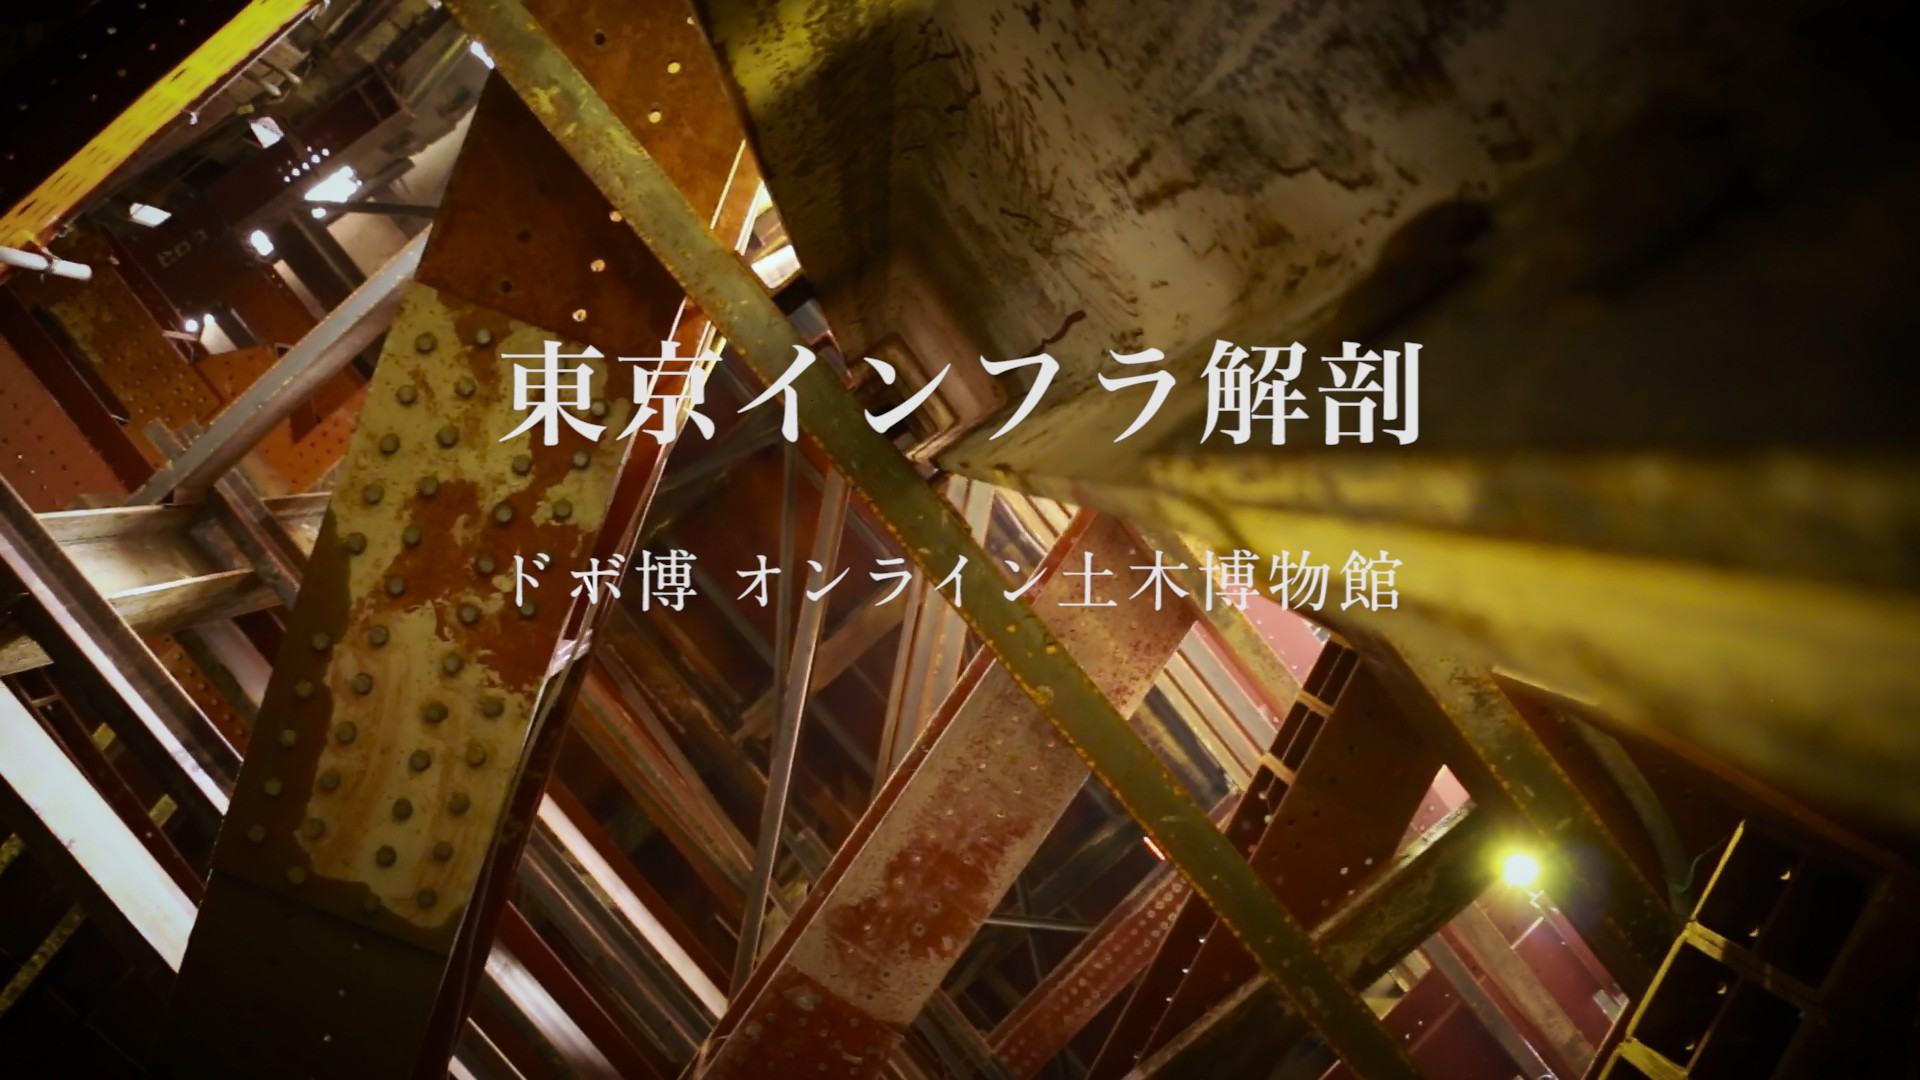 東京インフラ解剖 Promotion Video for ドボ博 dobohaku Online Museum of Civil Engineering